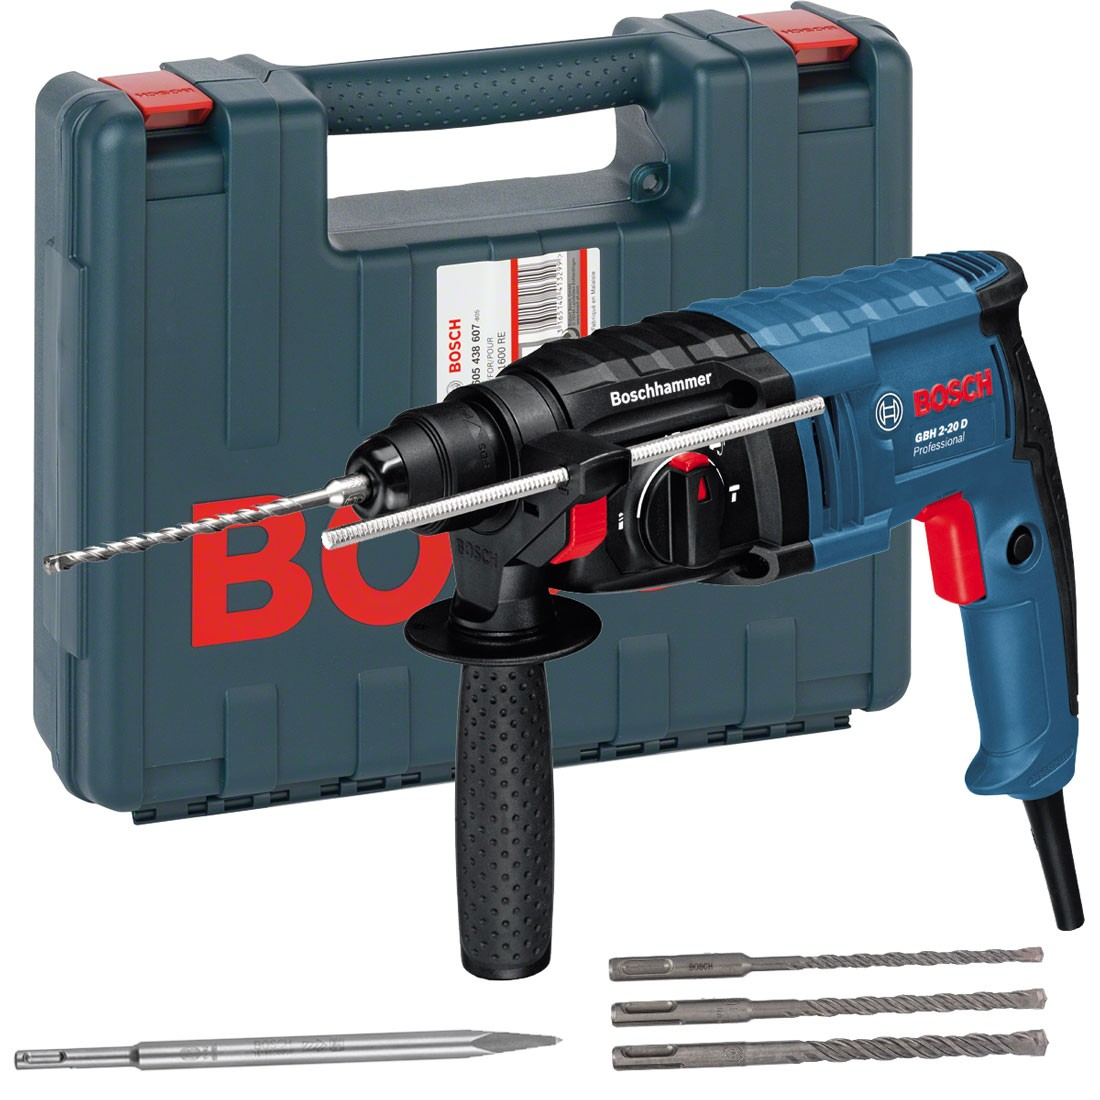 bosch gbh 2 20 d sds plus rotary hammer drill inc 3x drill bits 1x chisel 061125a465. Black Bedroom Furniture Sets. Home Design Ideas